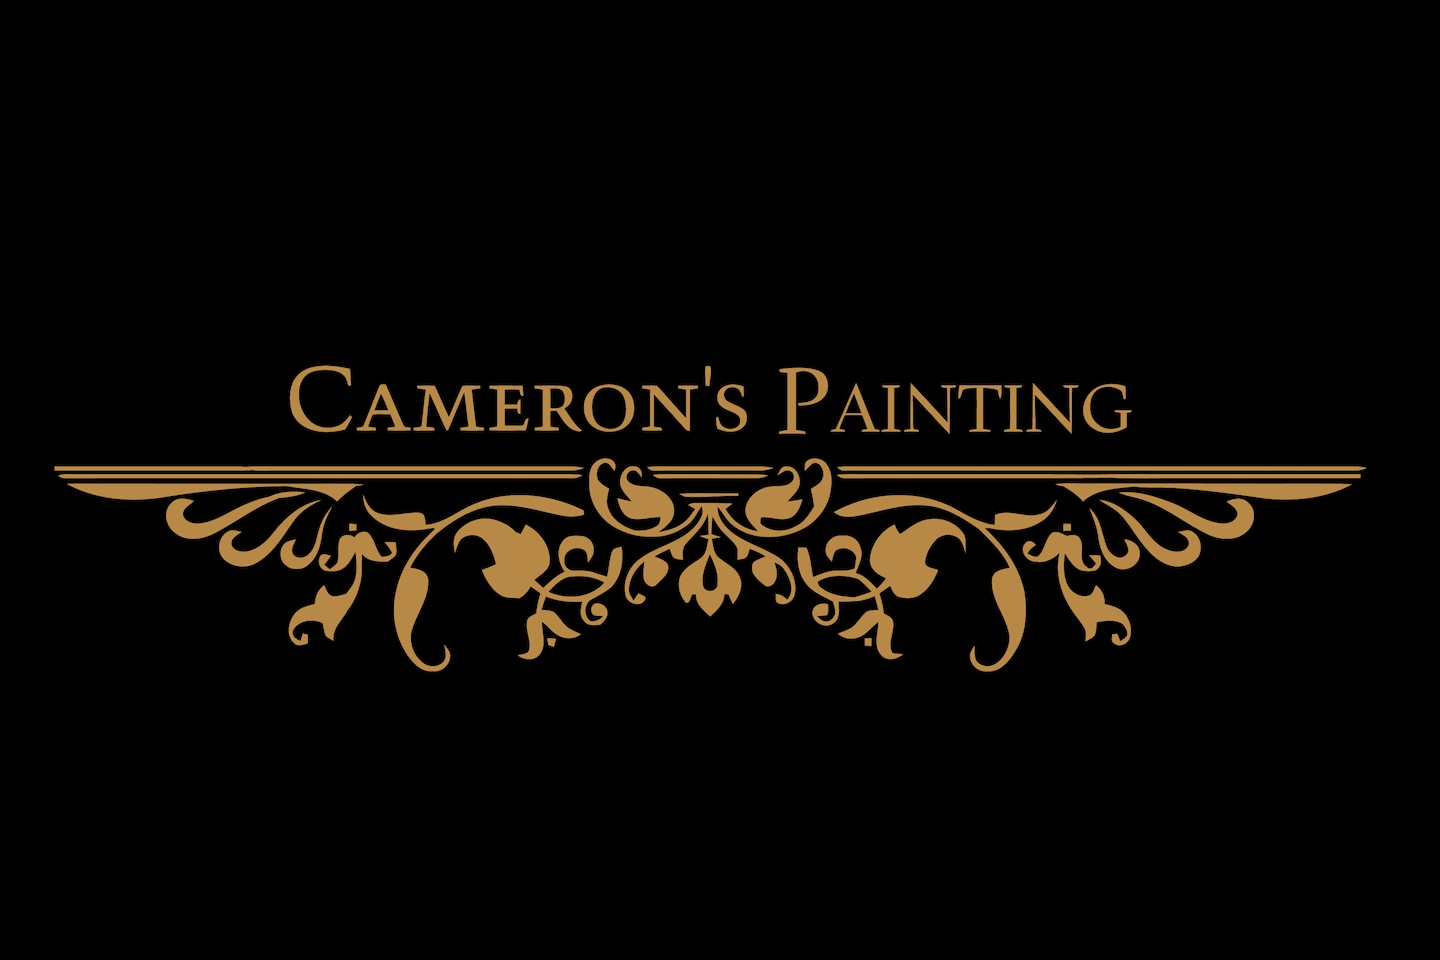 Cameron's Painting